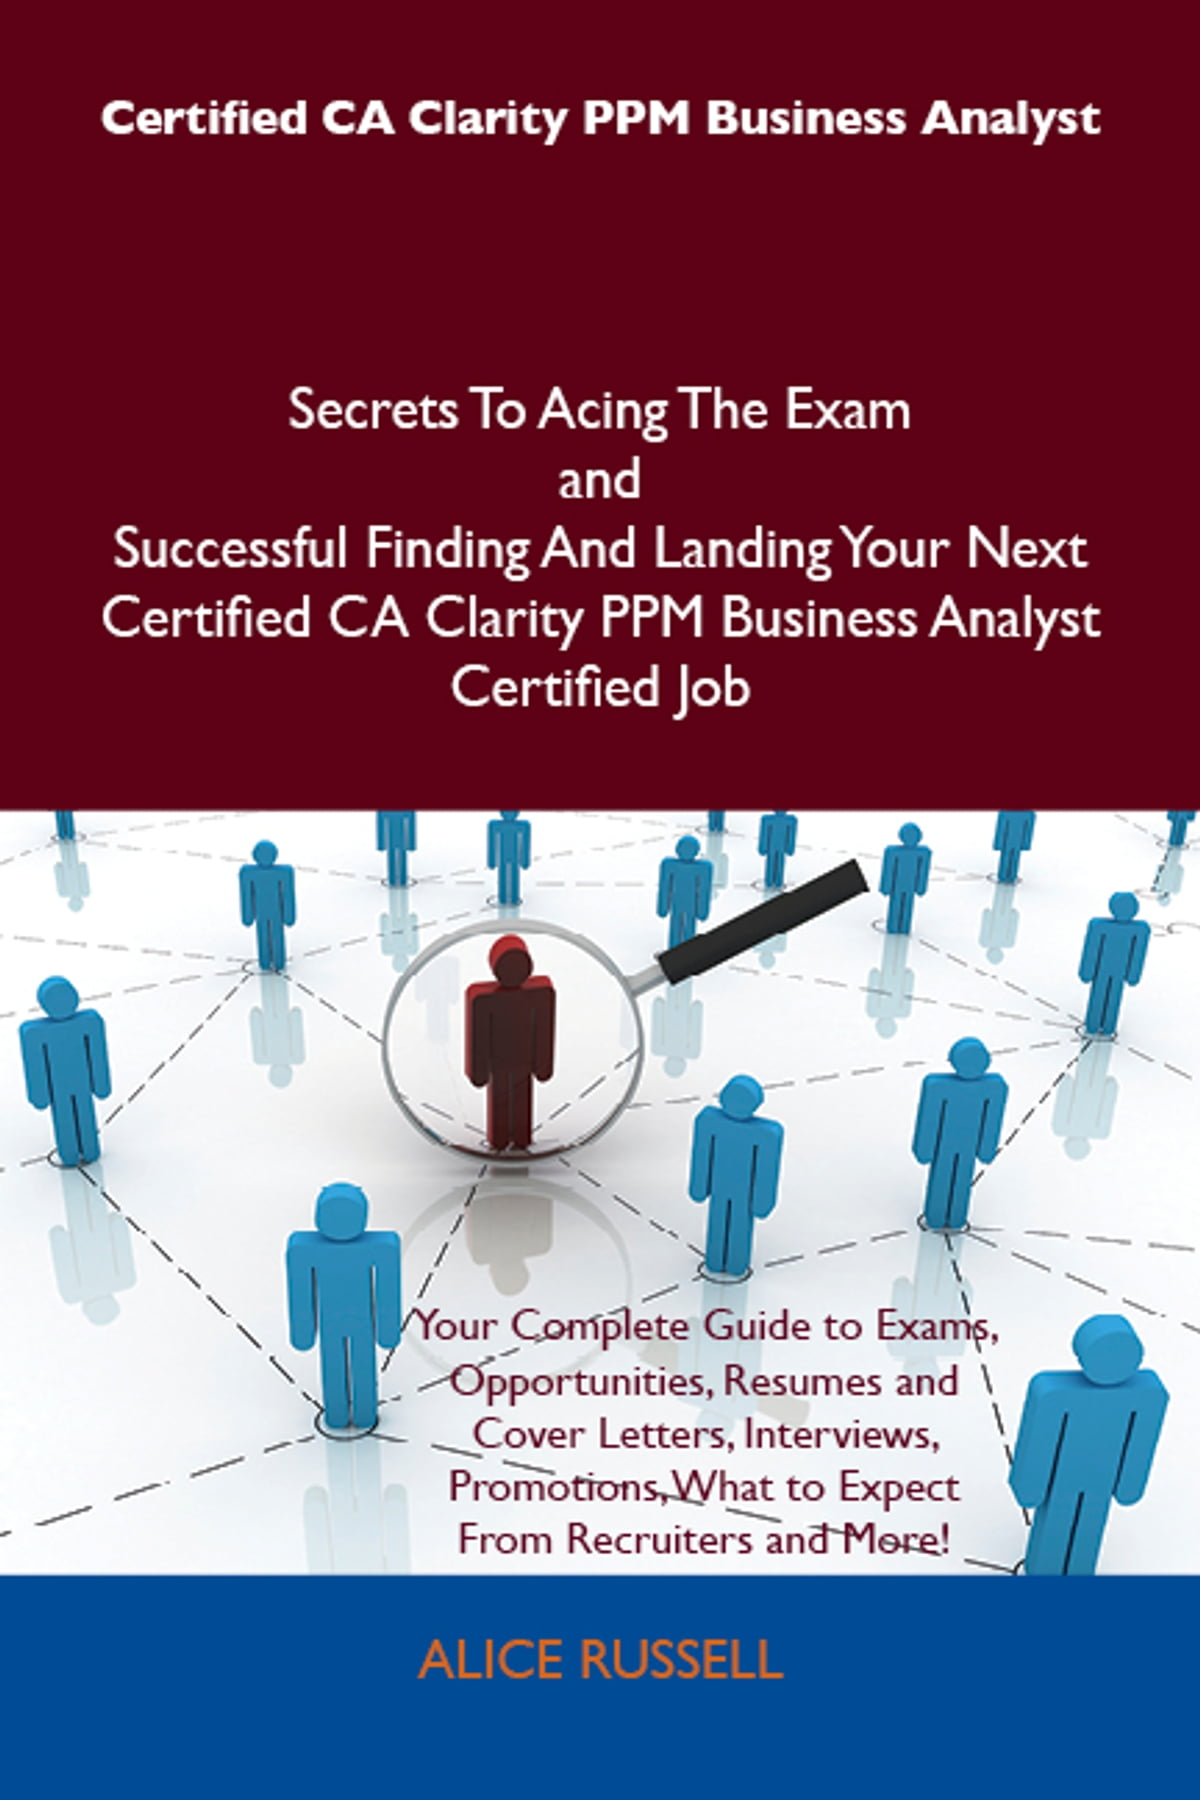 Certified Ca Clarity Ppm Business Analyst Secrets To Acing The Exam